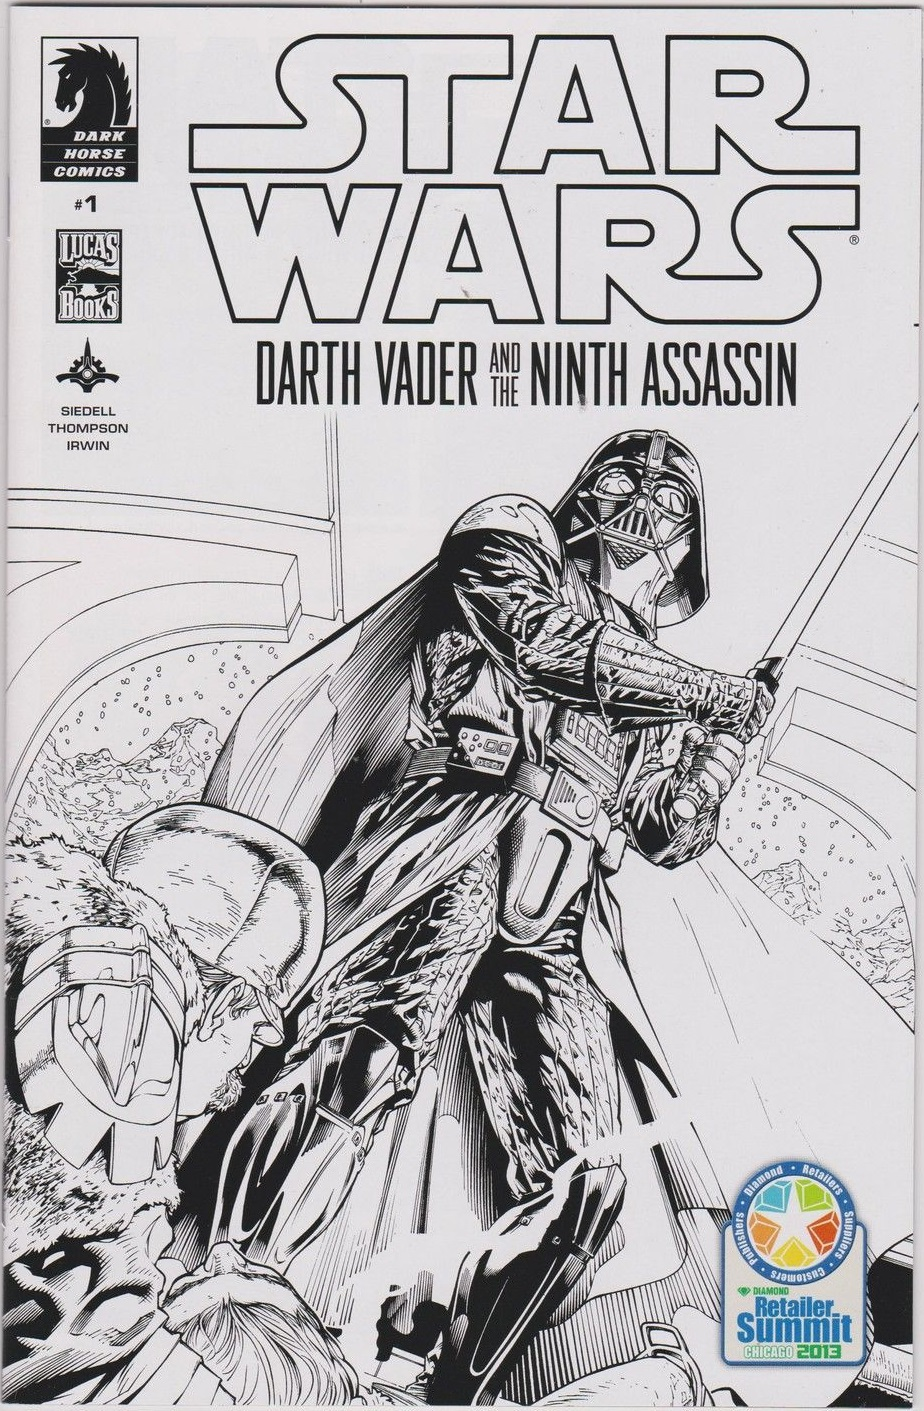 Darth Vader and the Ninth Assassin #1 (Diamond Retailer Summit Variant Cover) (24.04.2013)